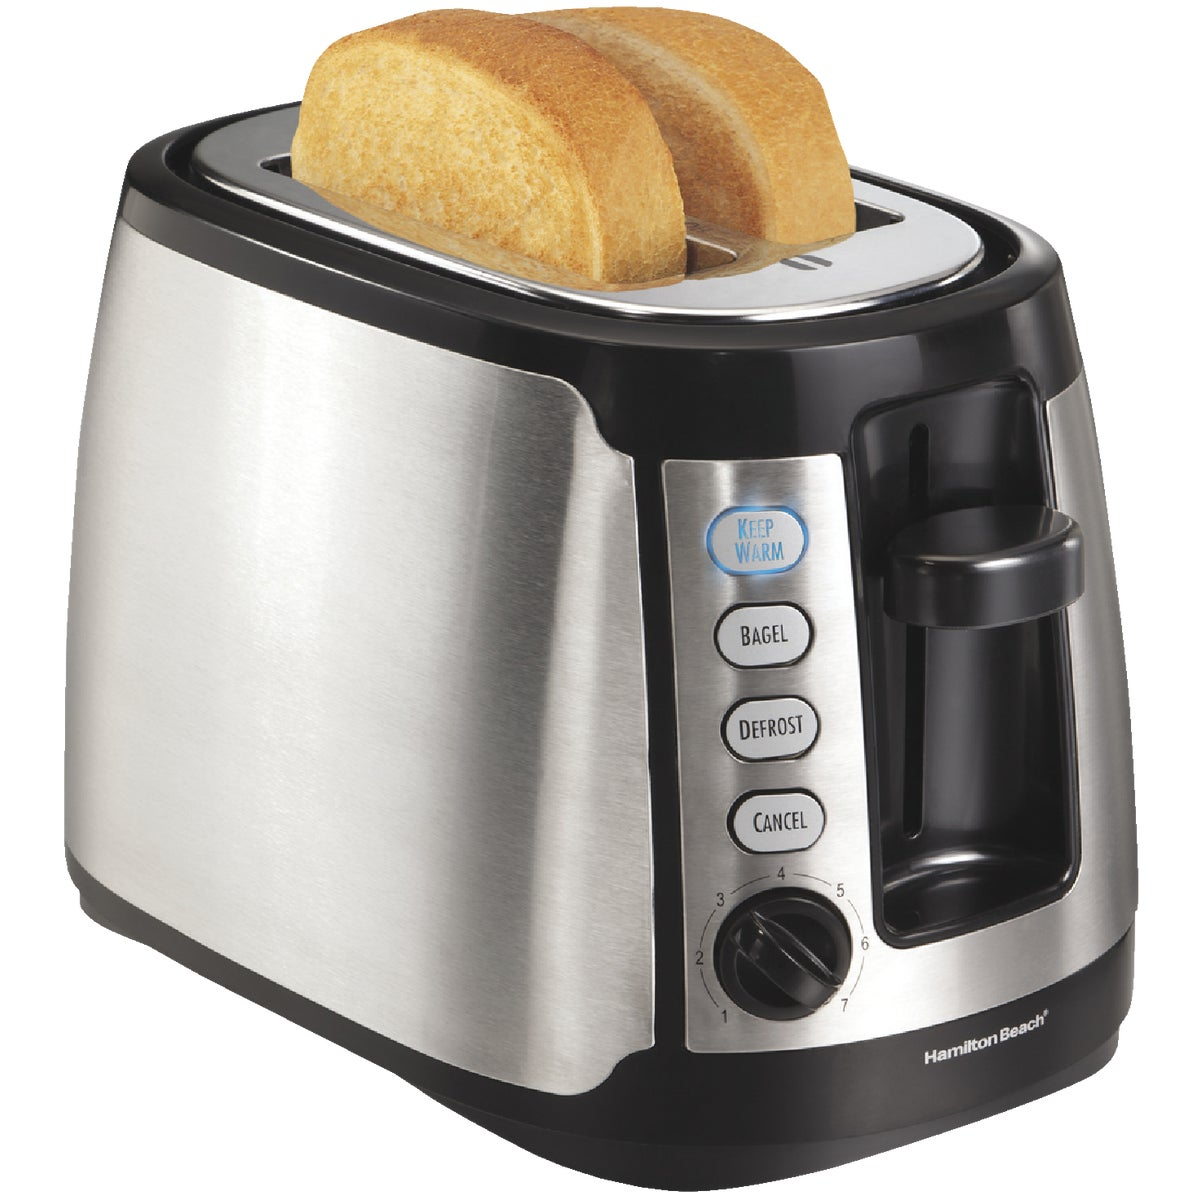 2 SL KEEP WARM TOASTER - 22811 by Hamilton Beach Brand